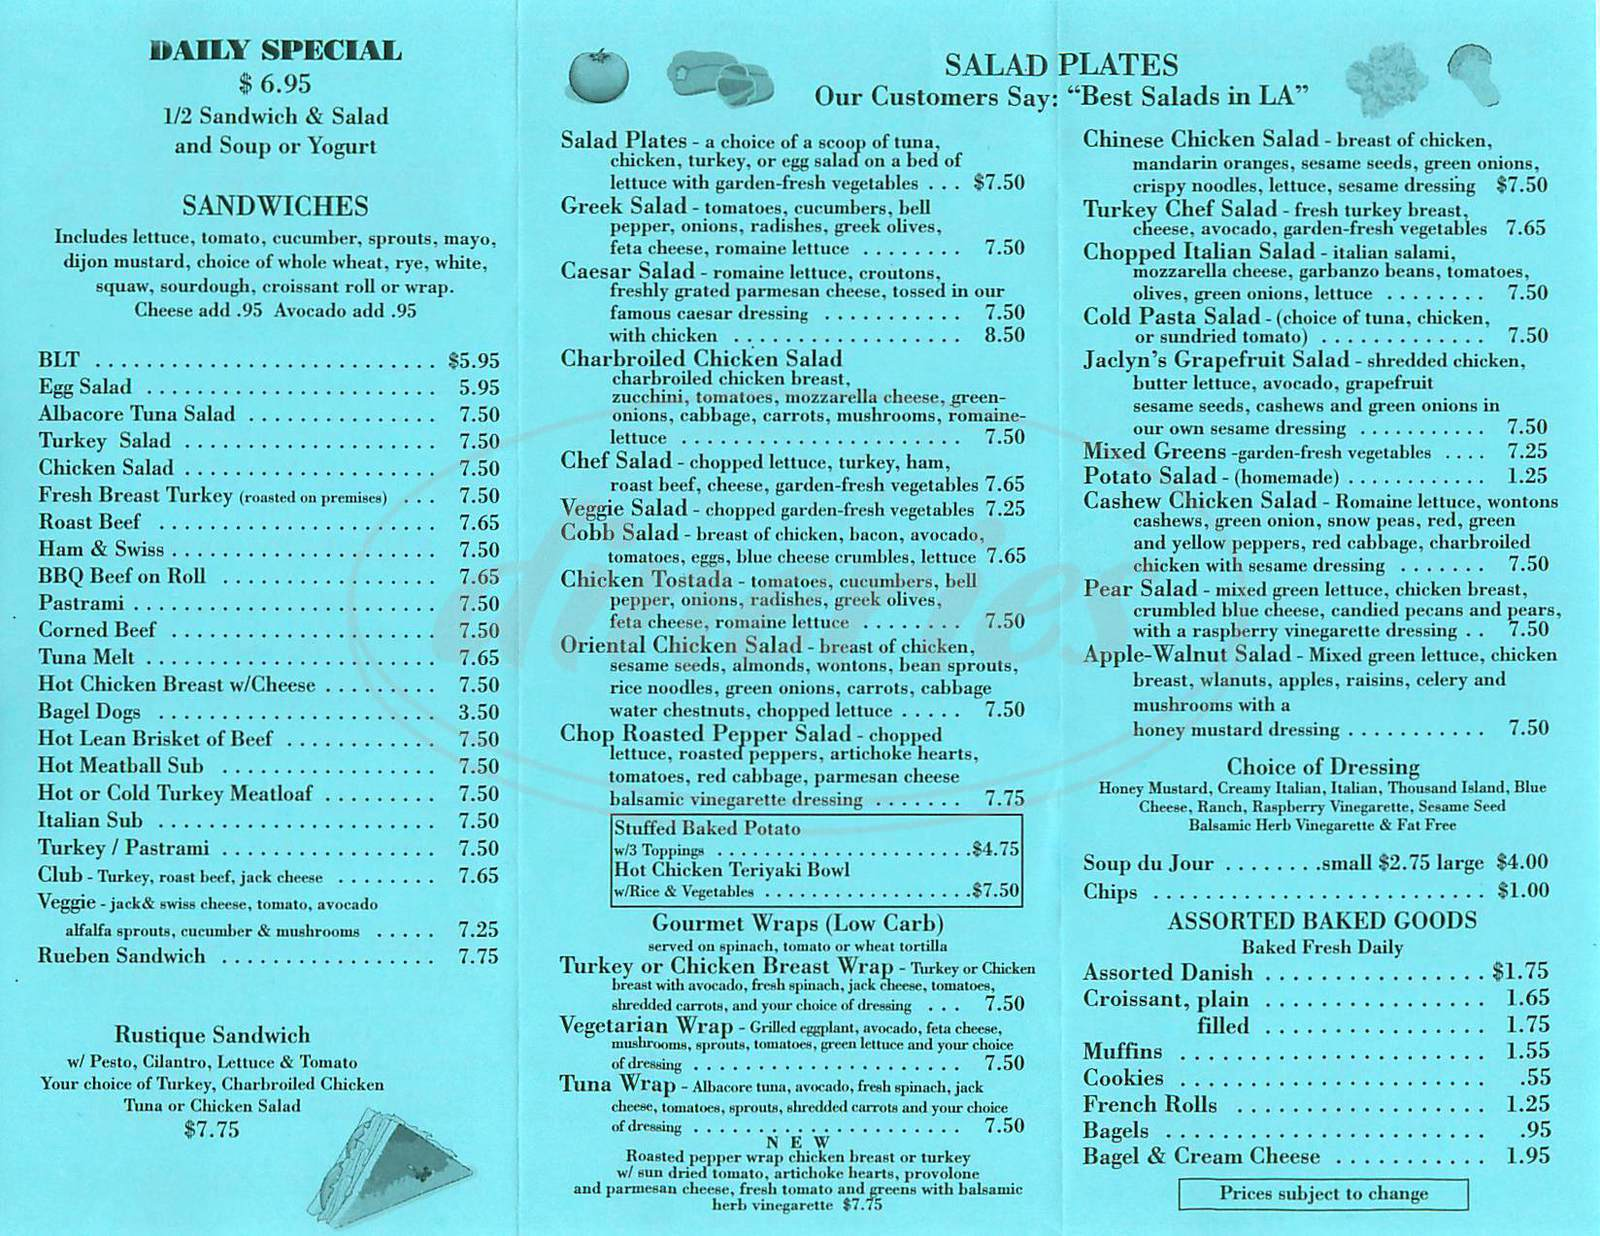 menu for Bud's Deli